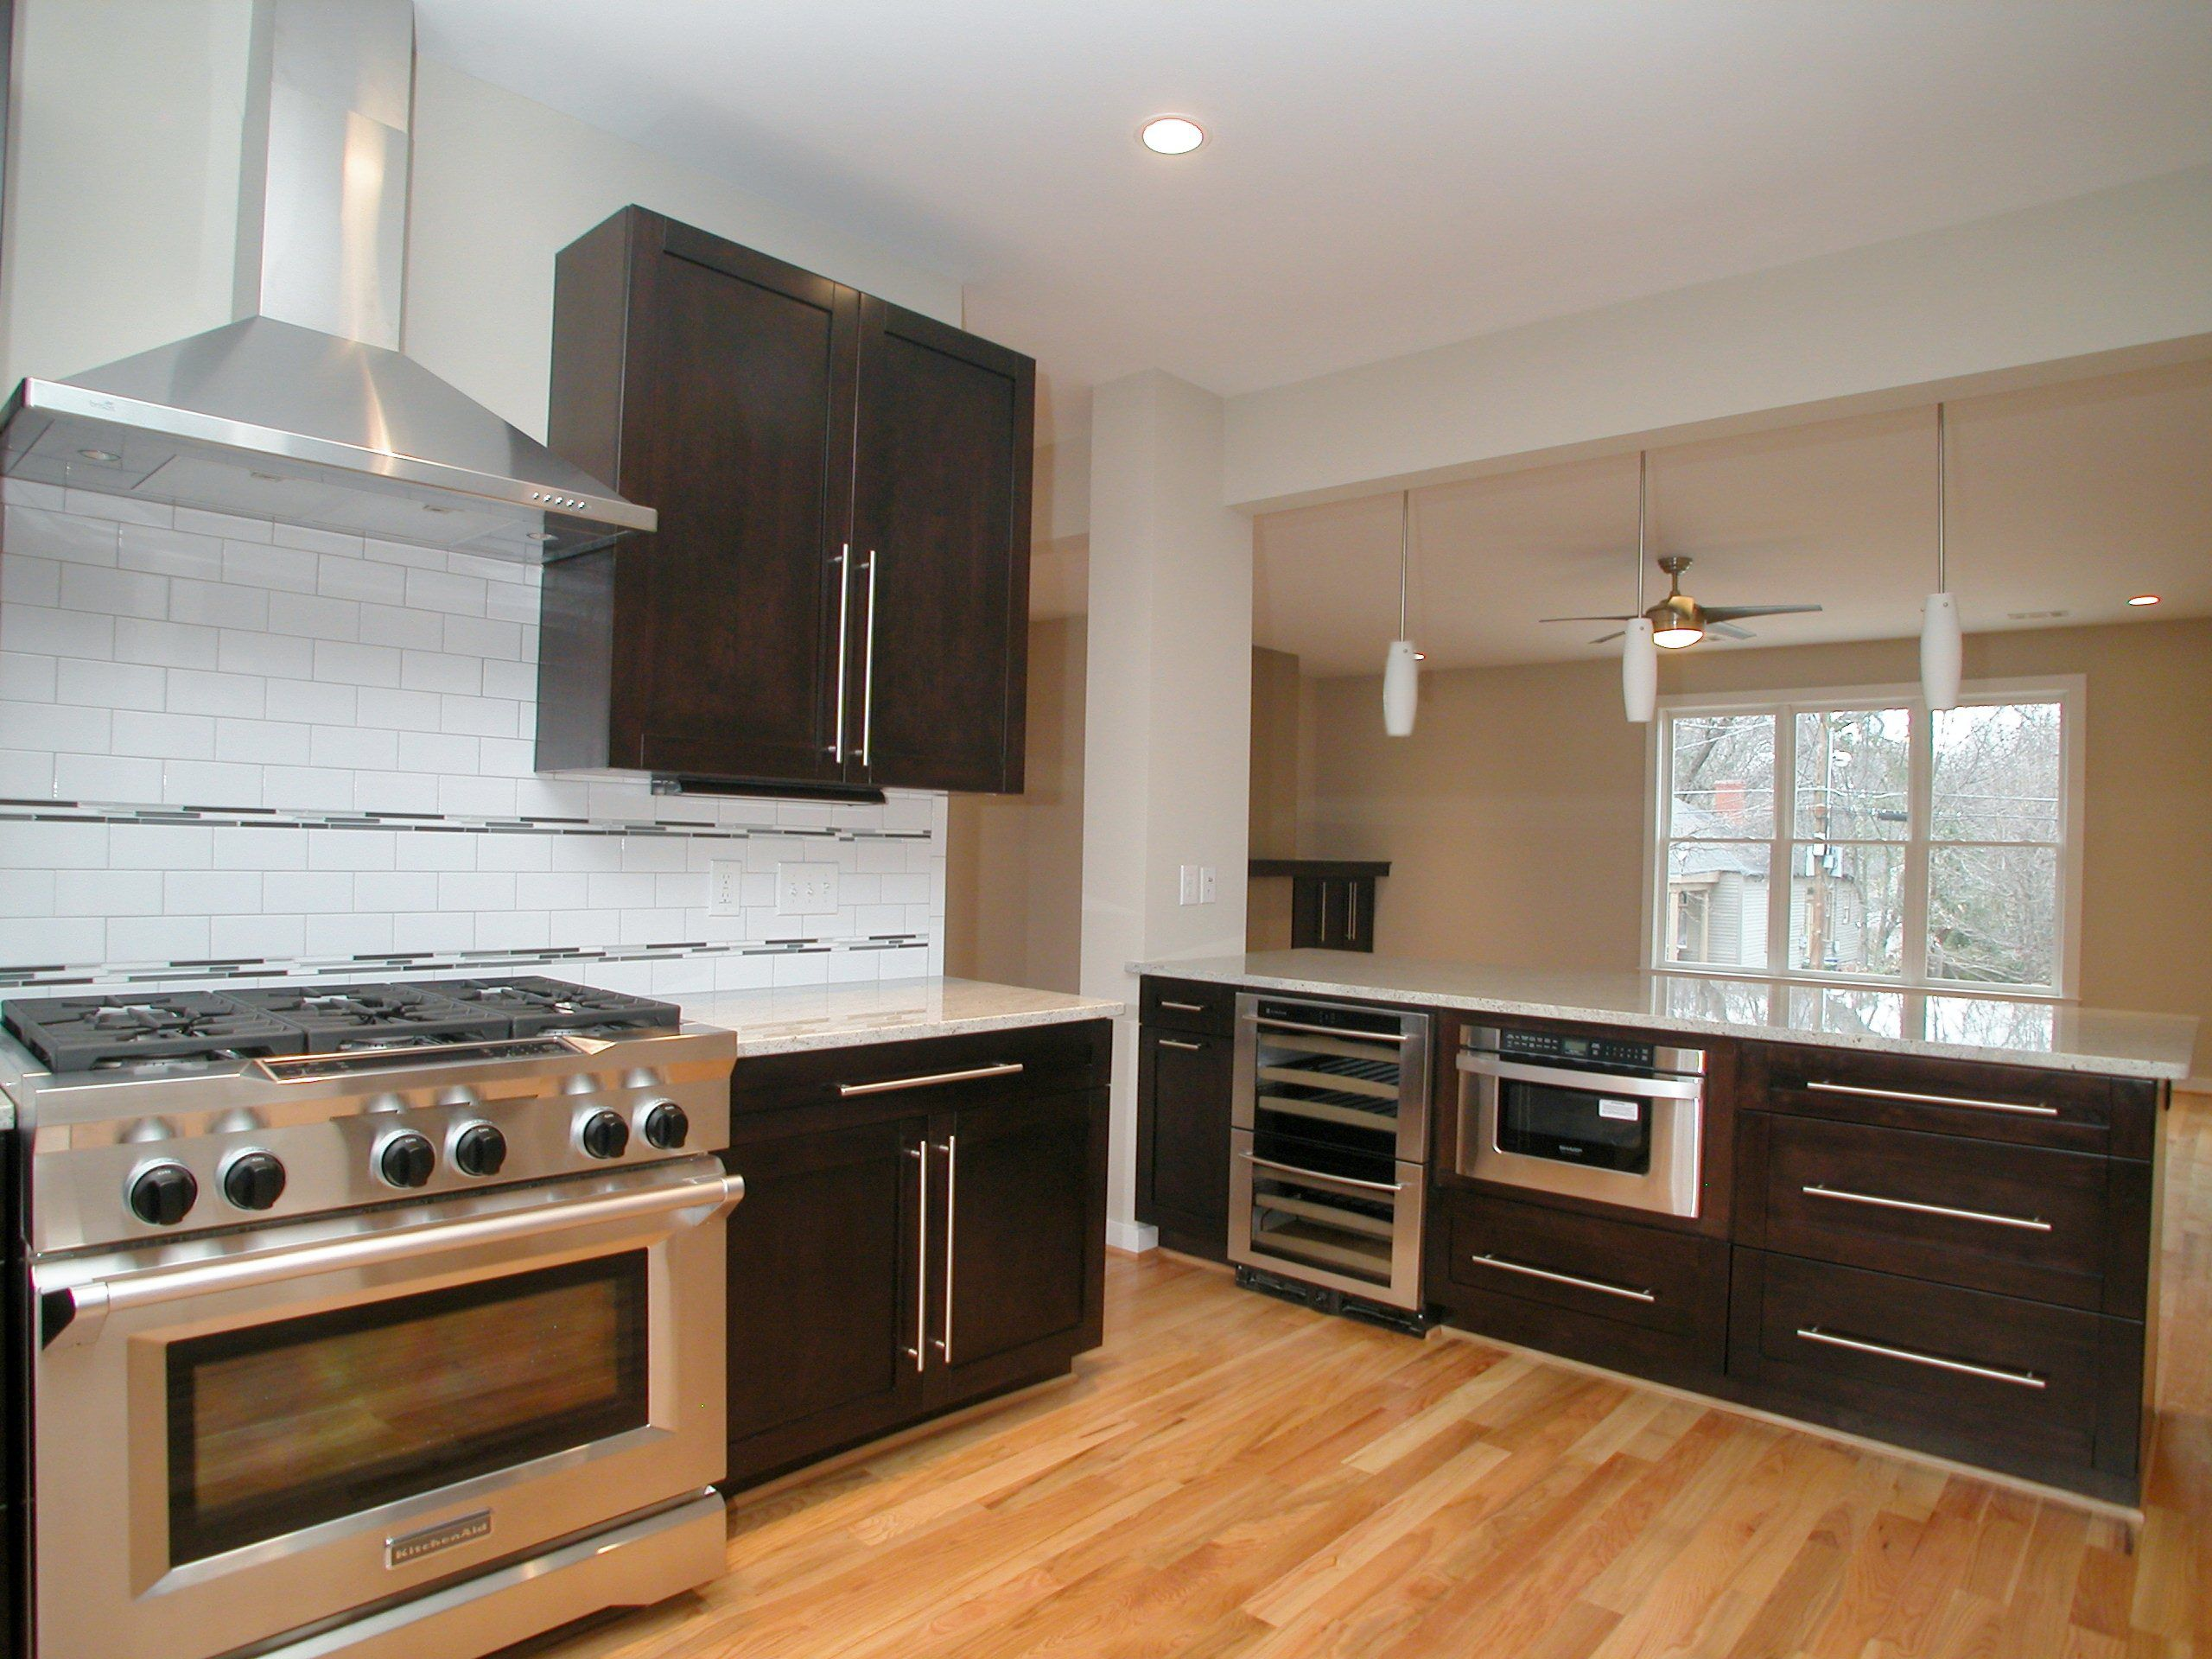 Kraftmaid Kitchen And Bathroom Cabinetry It Becomes You Kraftmaid Kitchens Kitchen Design Plans Kitchen Design Small